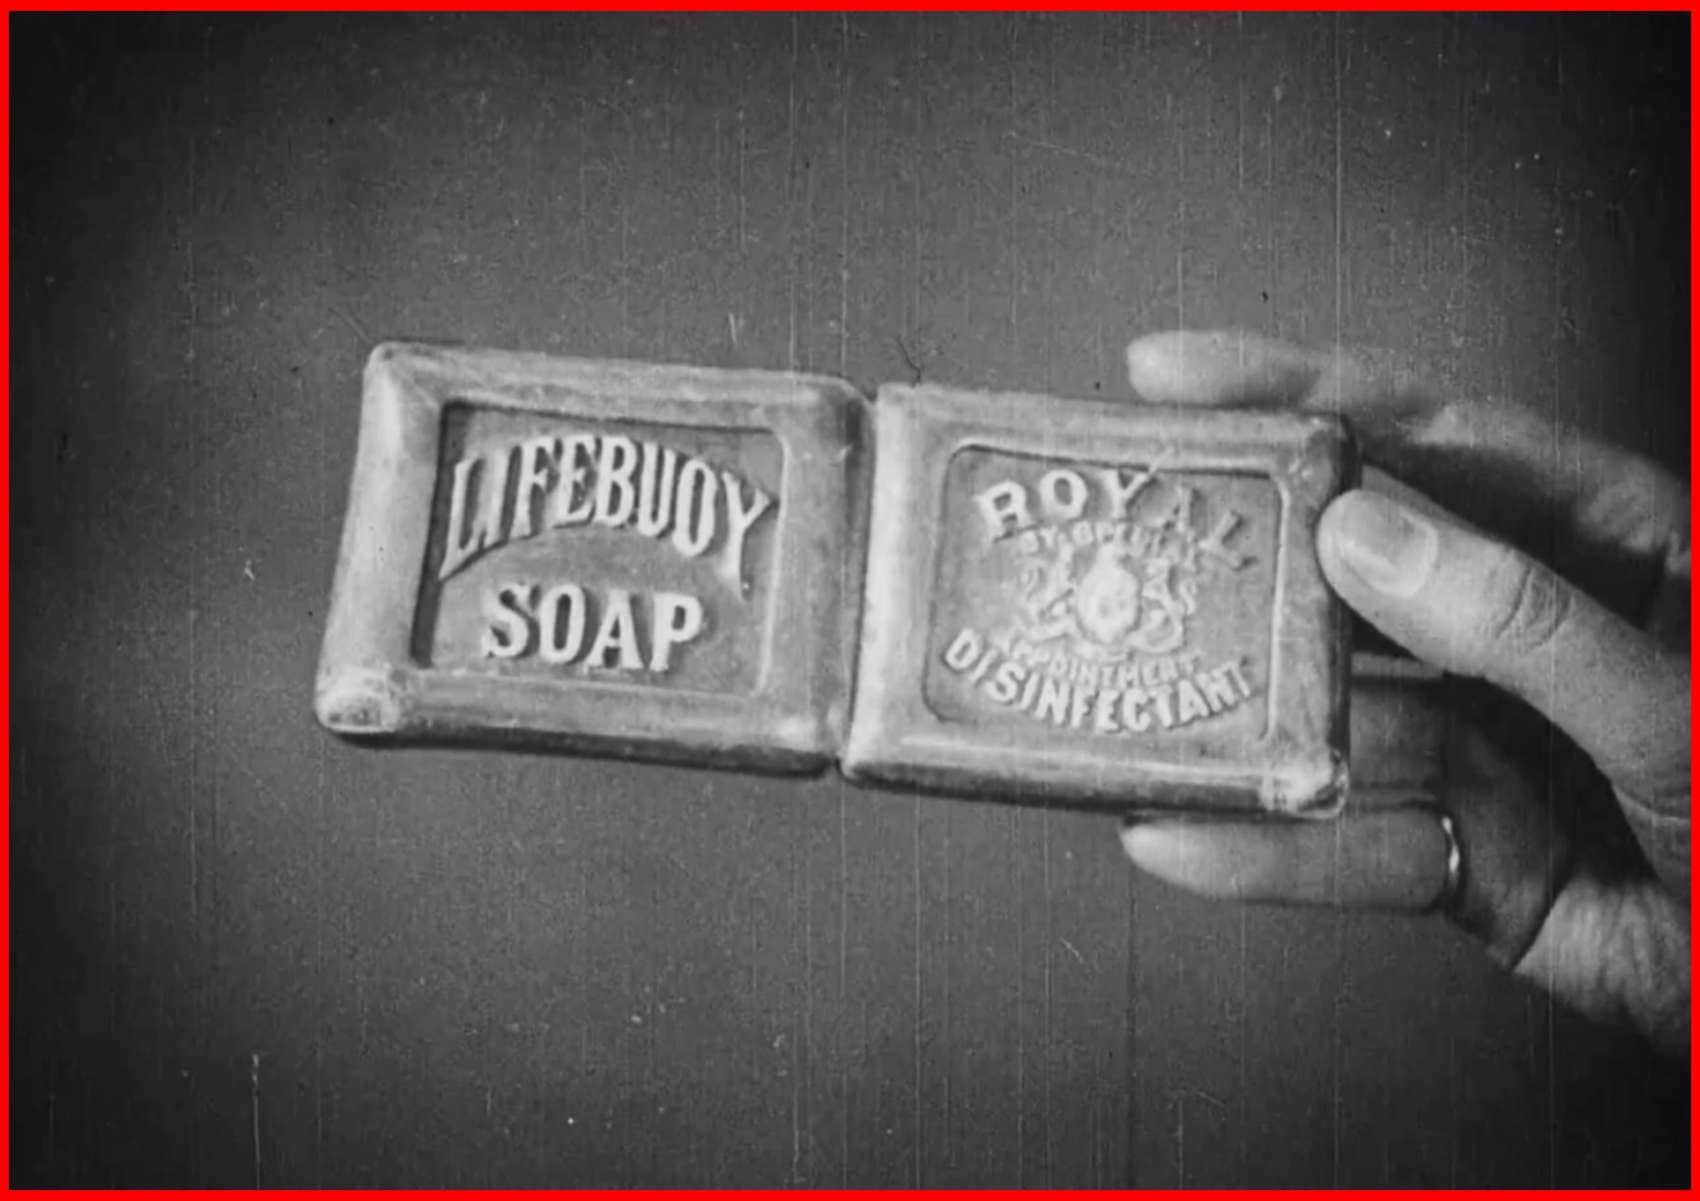 Lifebuoy soap bar